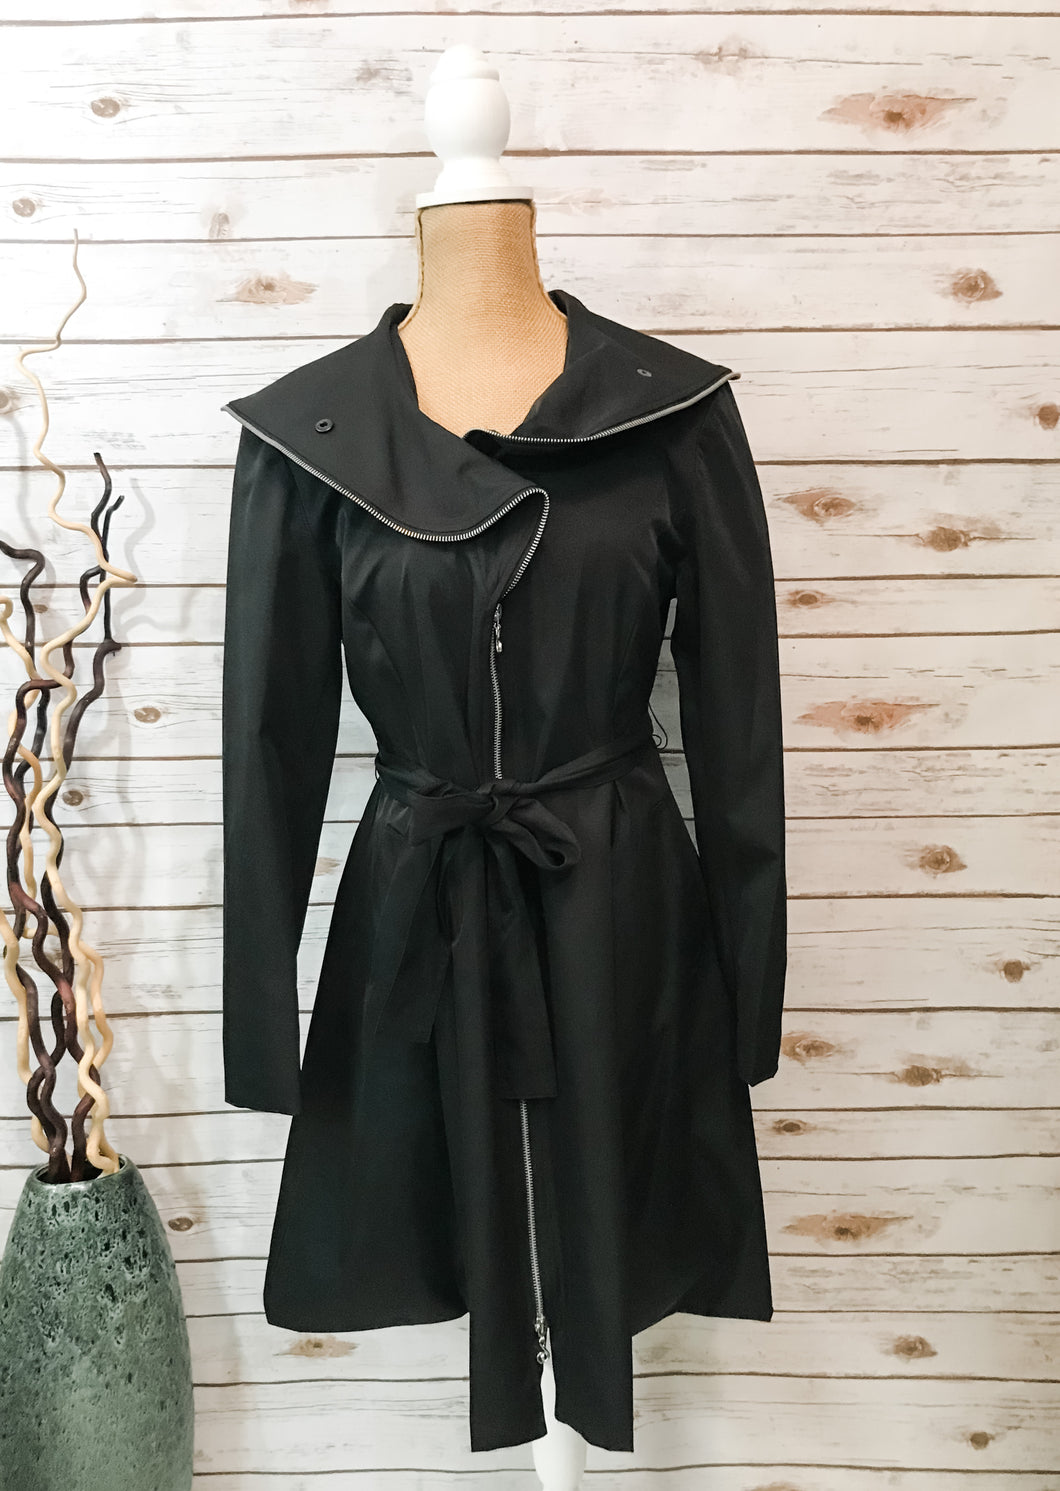 A-Line Zip Coat in Black